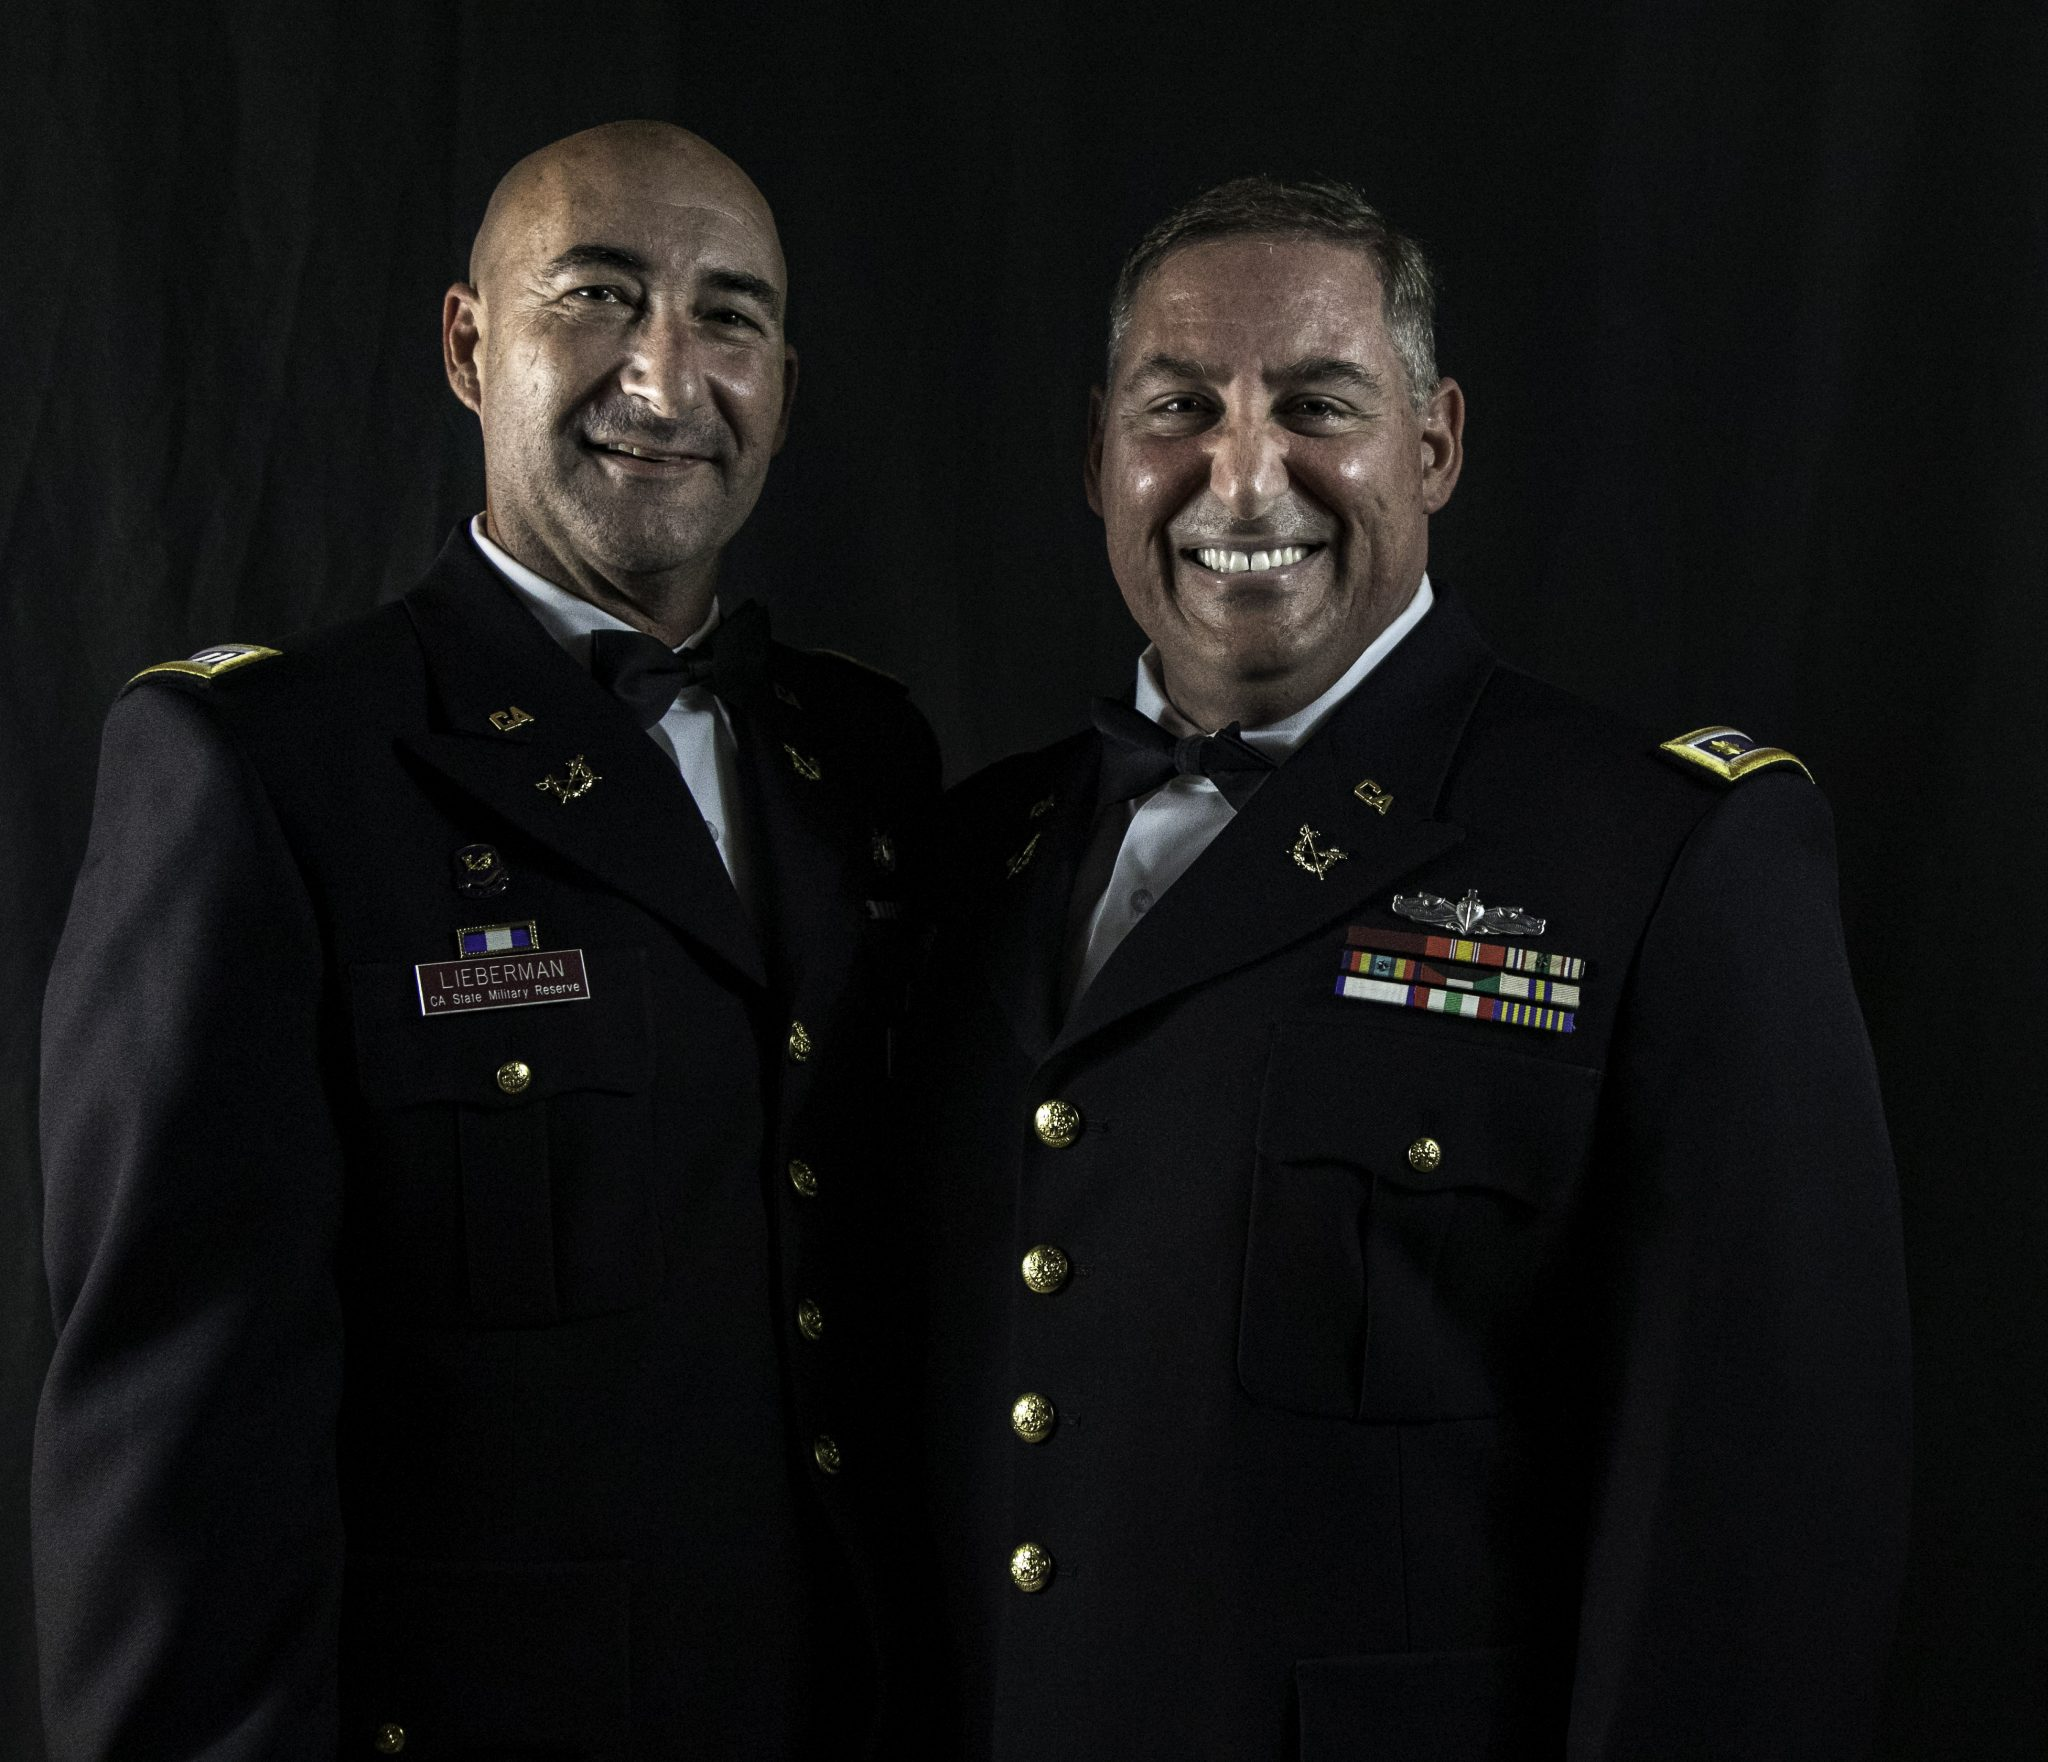 CA State Military Reserve Jag Officers Major Cosmo Taormina and Captain Steven Lieberman